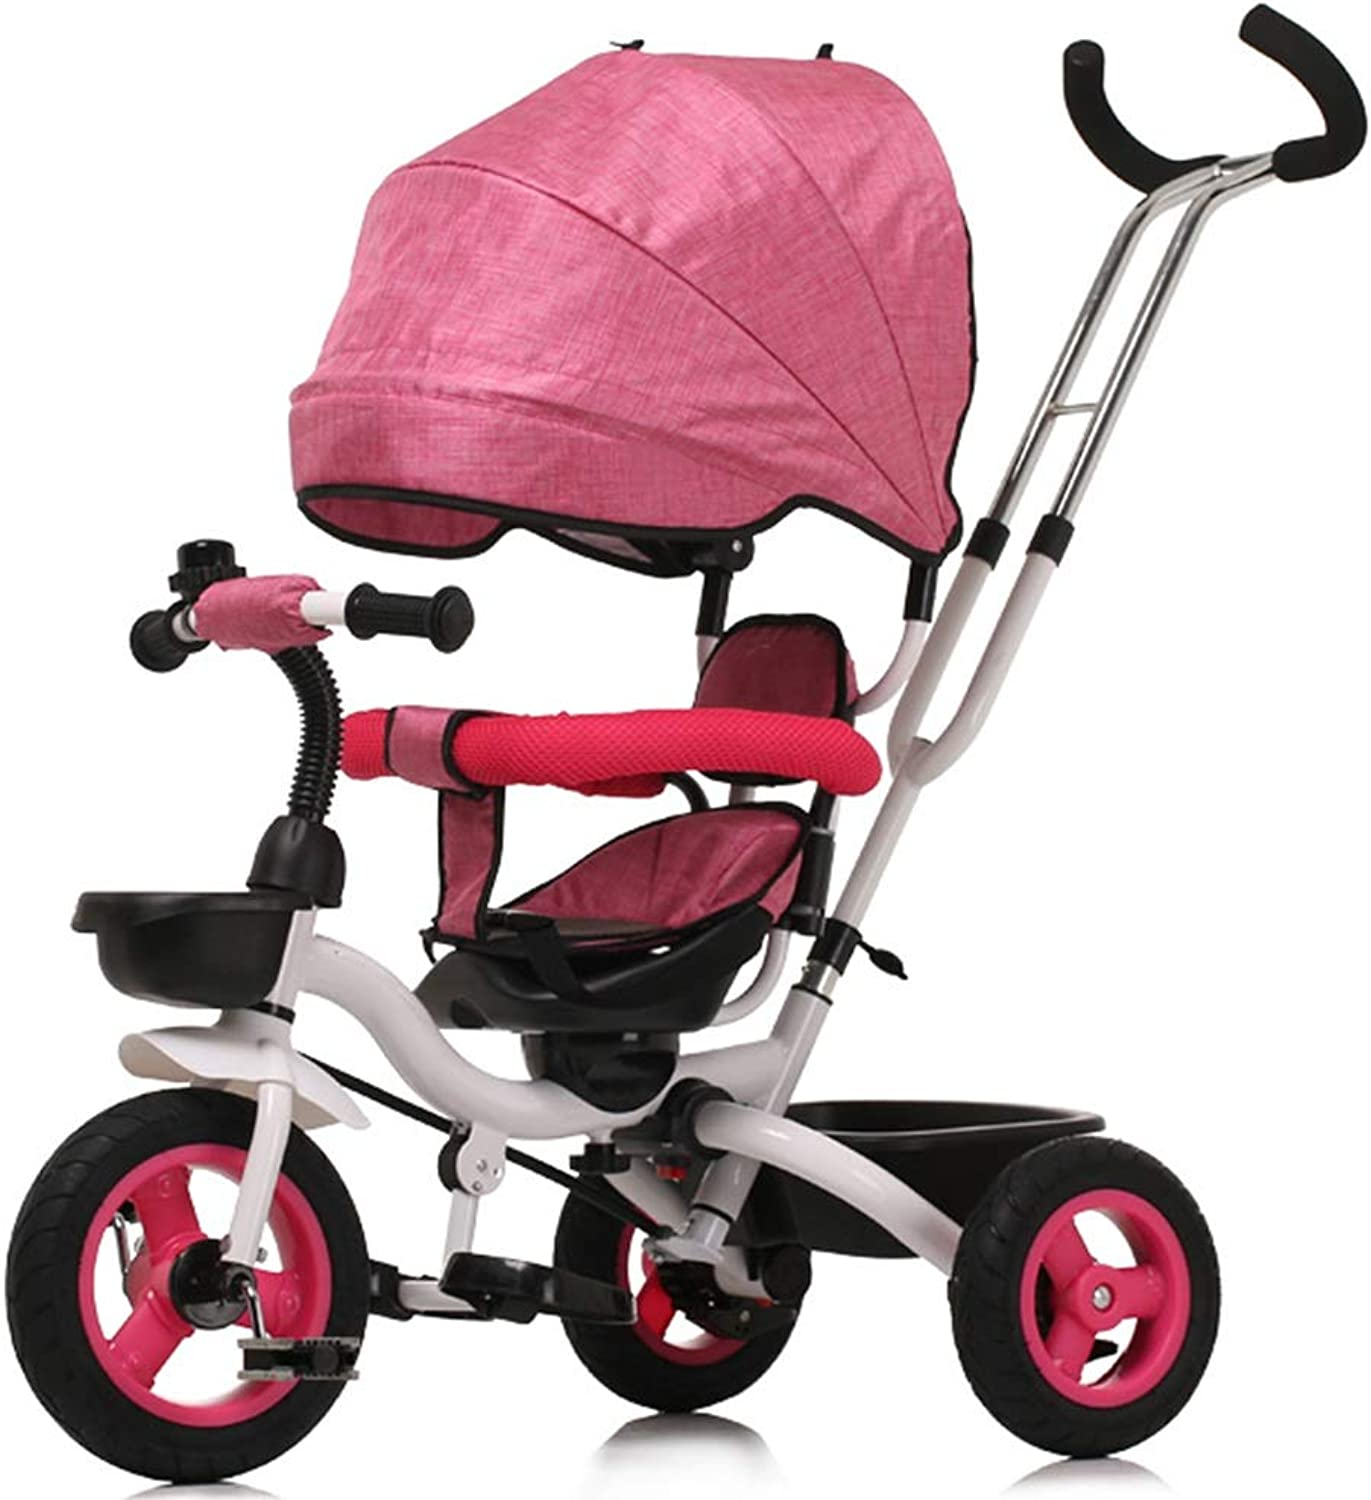 YUMEIGE Kids' Tricycles Kids Tricycle 16 Years Old Birthday Gift Tricycle Load Weight 25 kg Kids Strollers Toddler Trike with Awning (color  Pink,Purple) Available